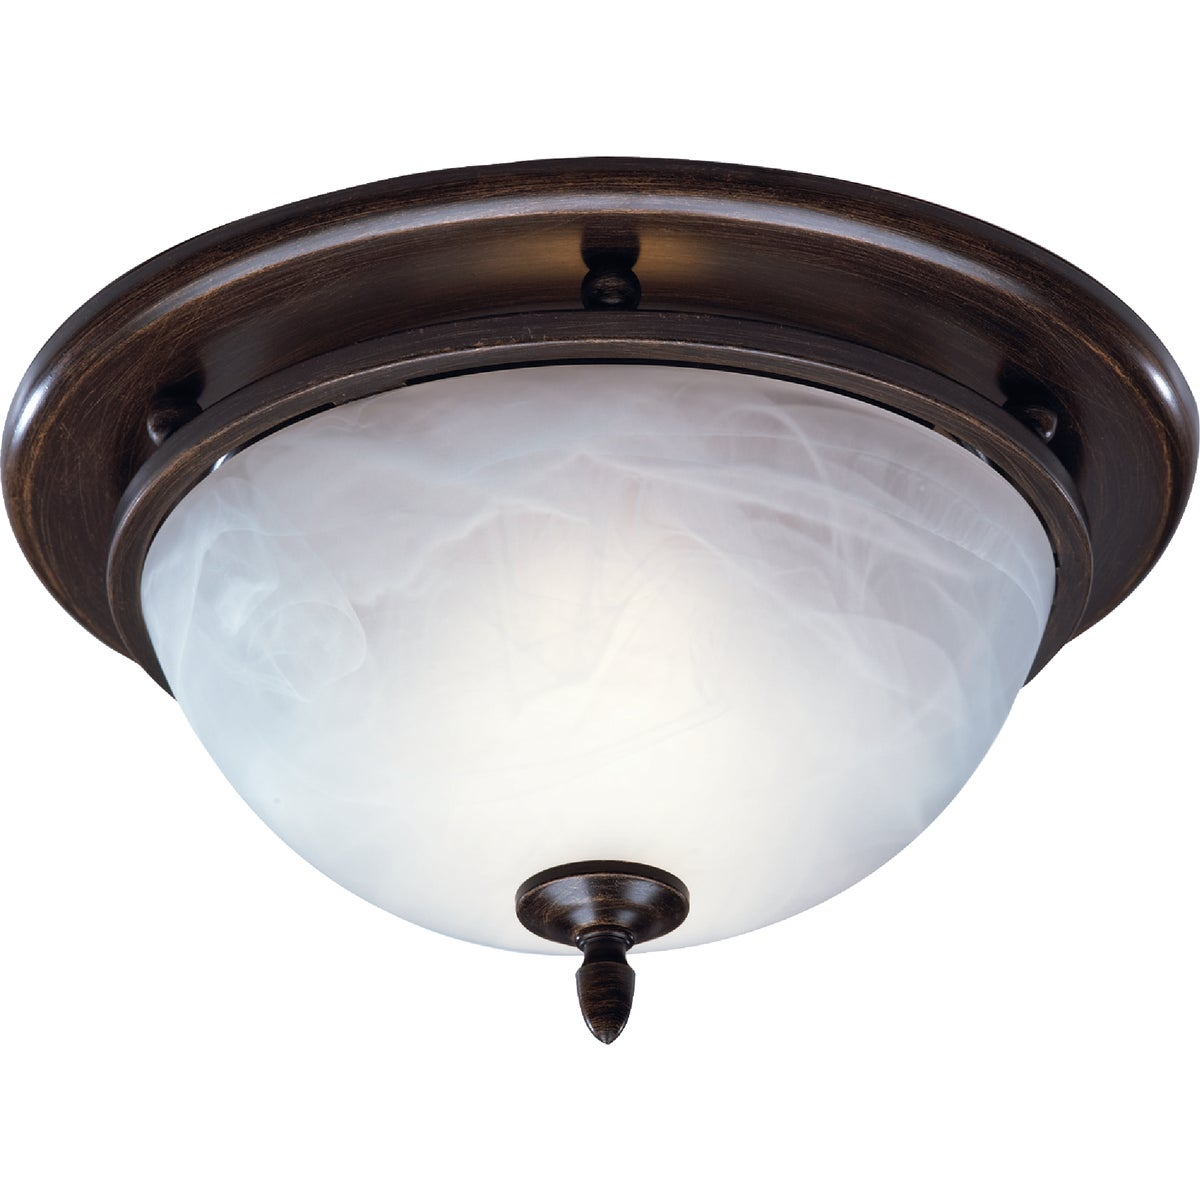 70CFM ORB LIGHT/BATH FAN - 754RB by Broan Nutone